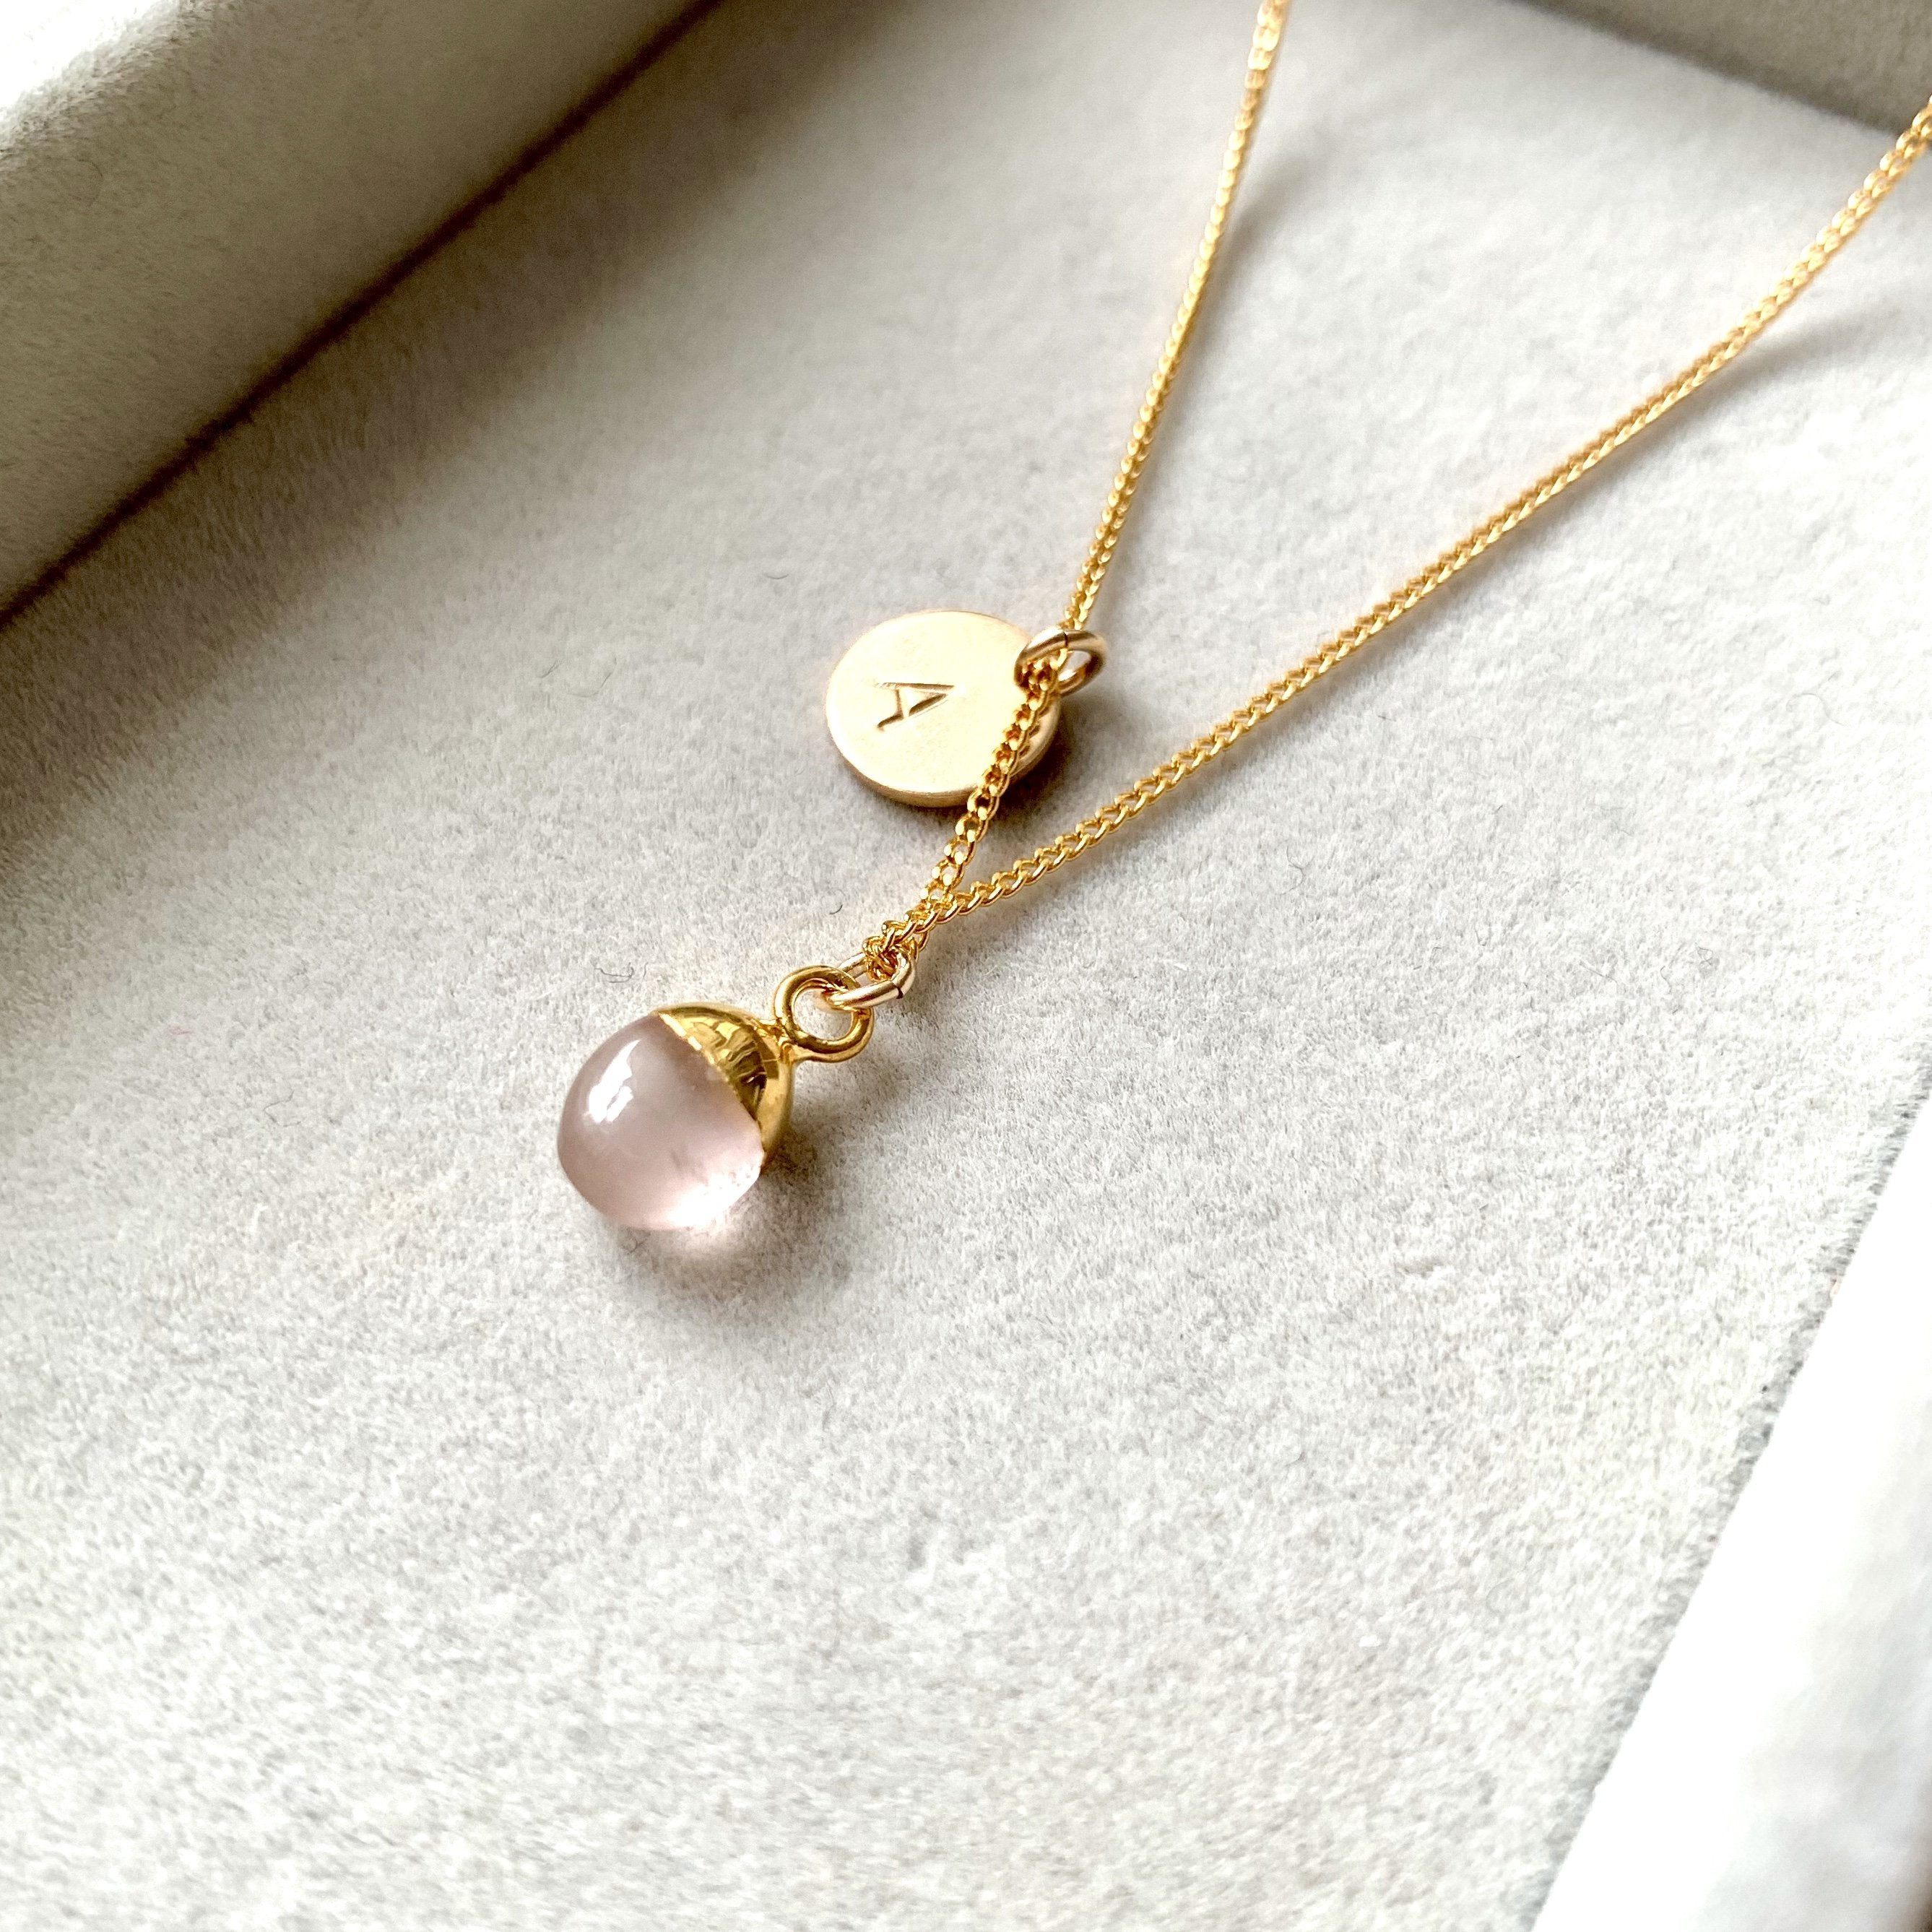 Tiny Tumbled Gemstone Necklace - Rose Quartz (Love) - Decadorn